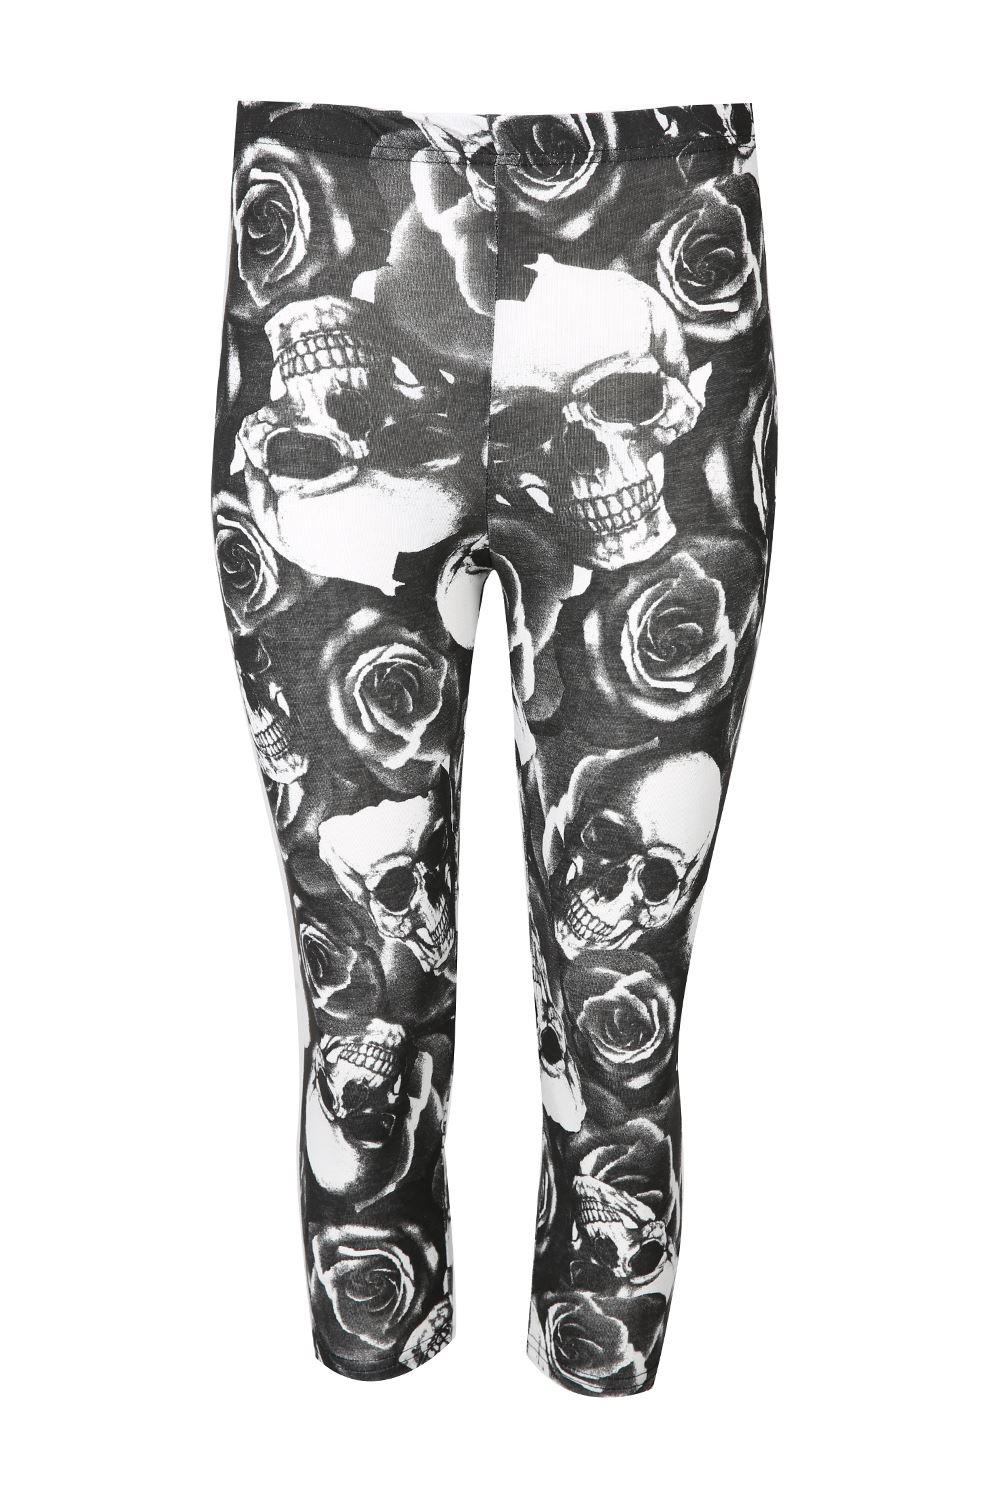 Womens Print 3/4 Length Jogging Running Trousers Ladies Gymming Bottoms Leggings